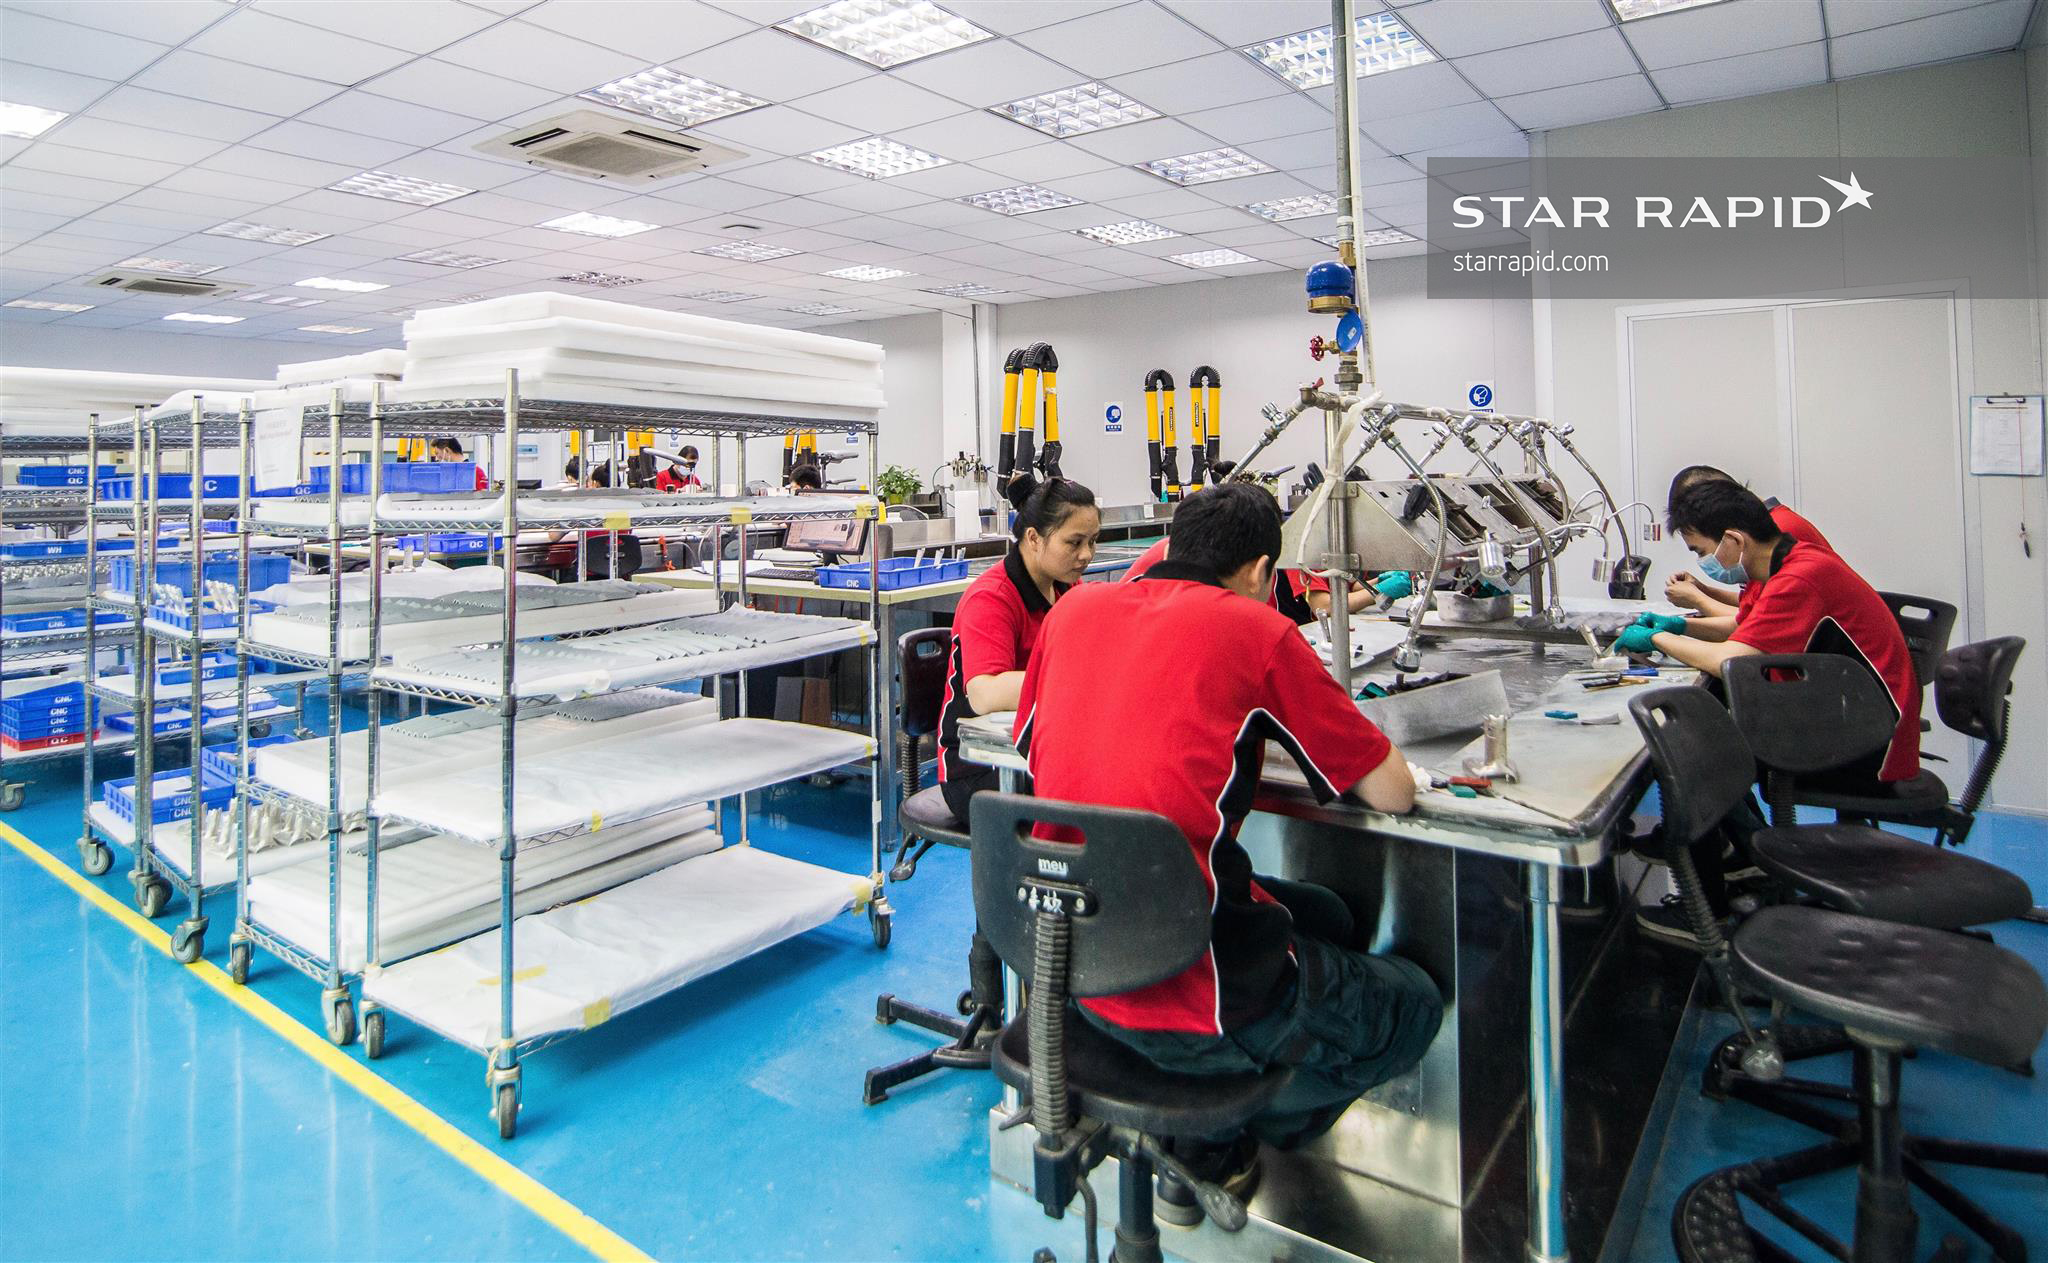 Model finishing shop at Star Rapid